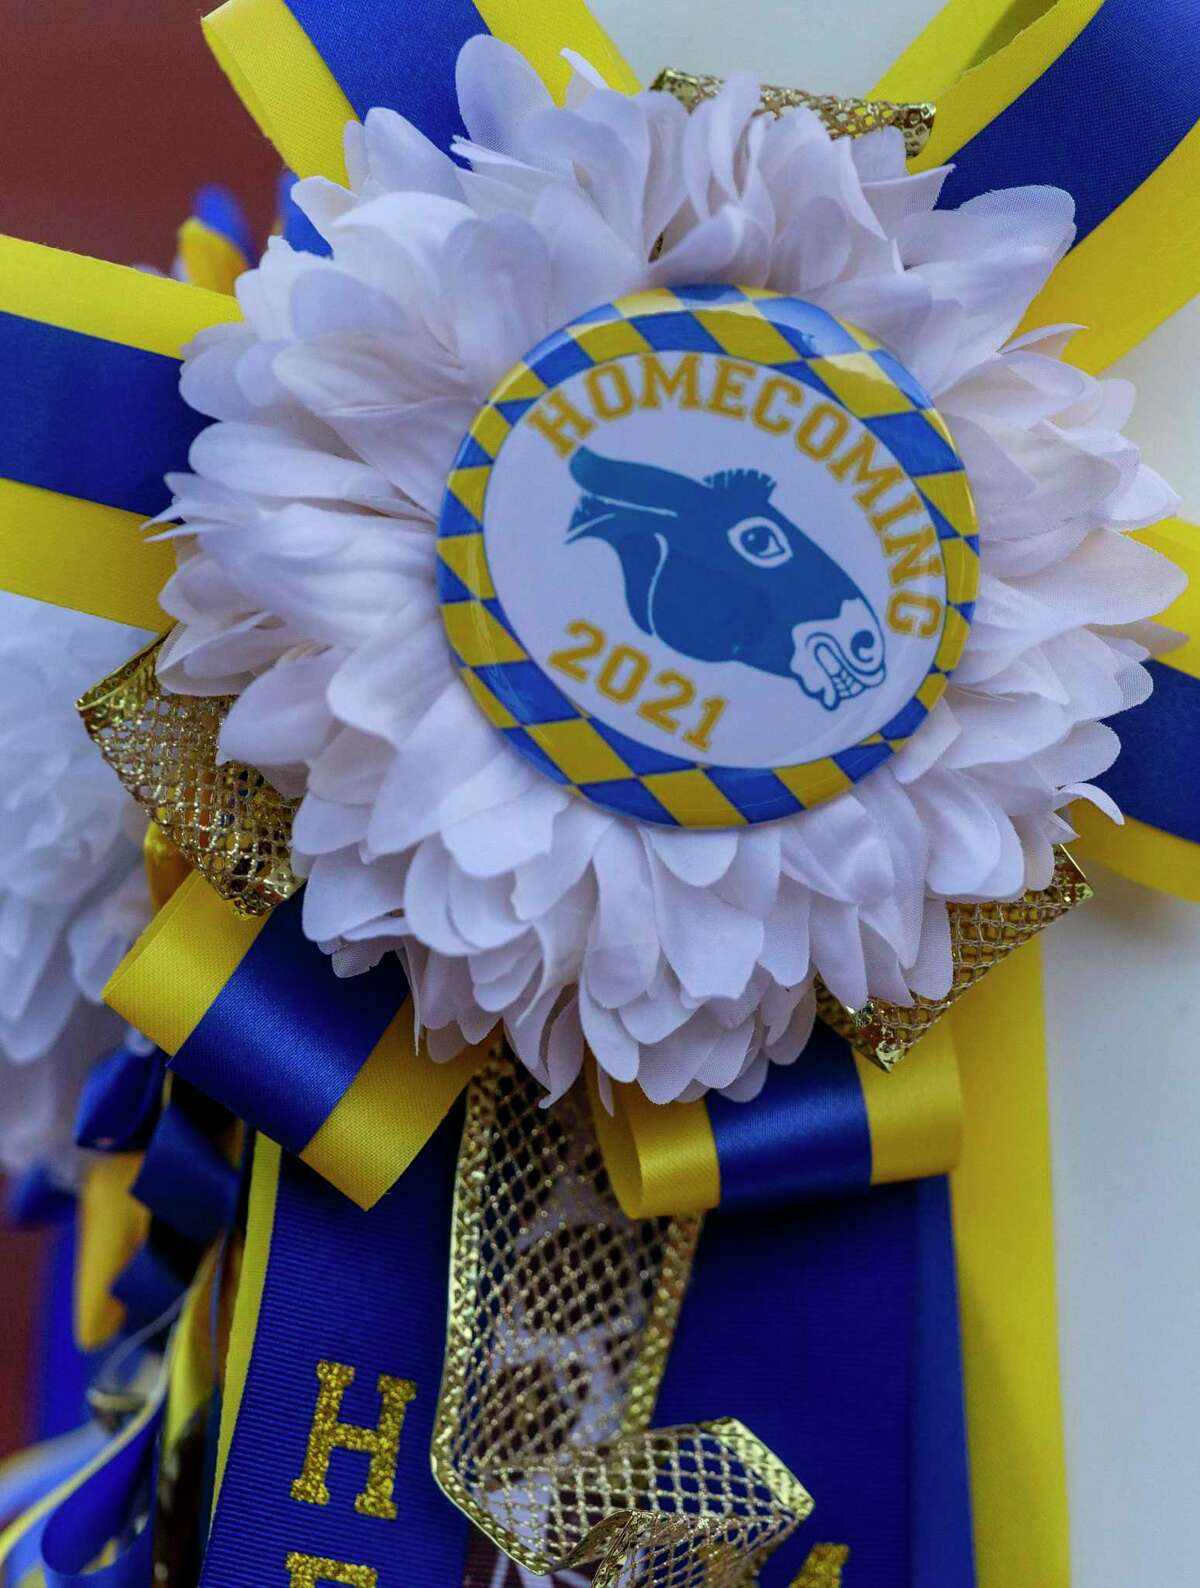 A homecoming mum is seen Friday, Oct. 8, 2021 on a cheerleader's megaphone before the start of the Alamo Heights Mules' homecoming game against Floresville.